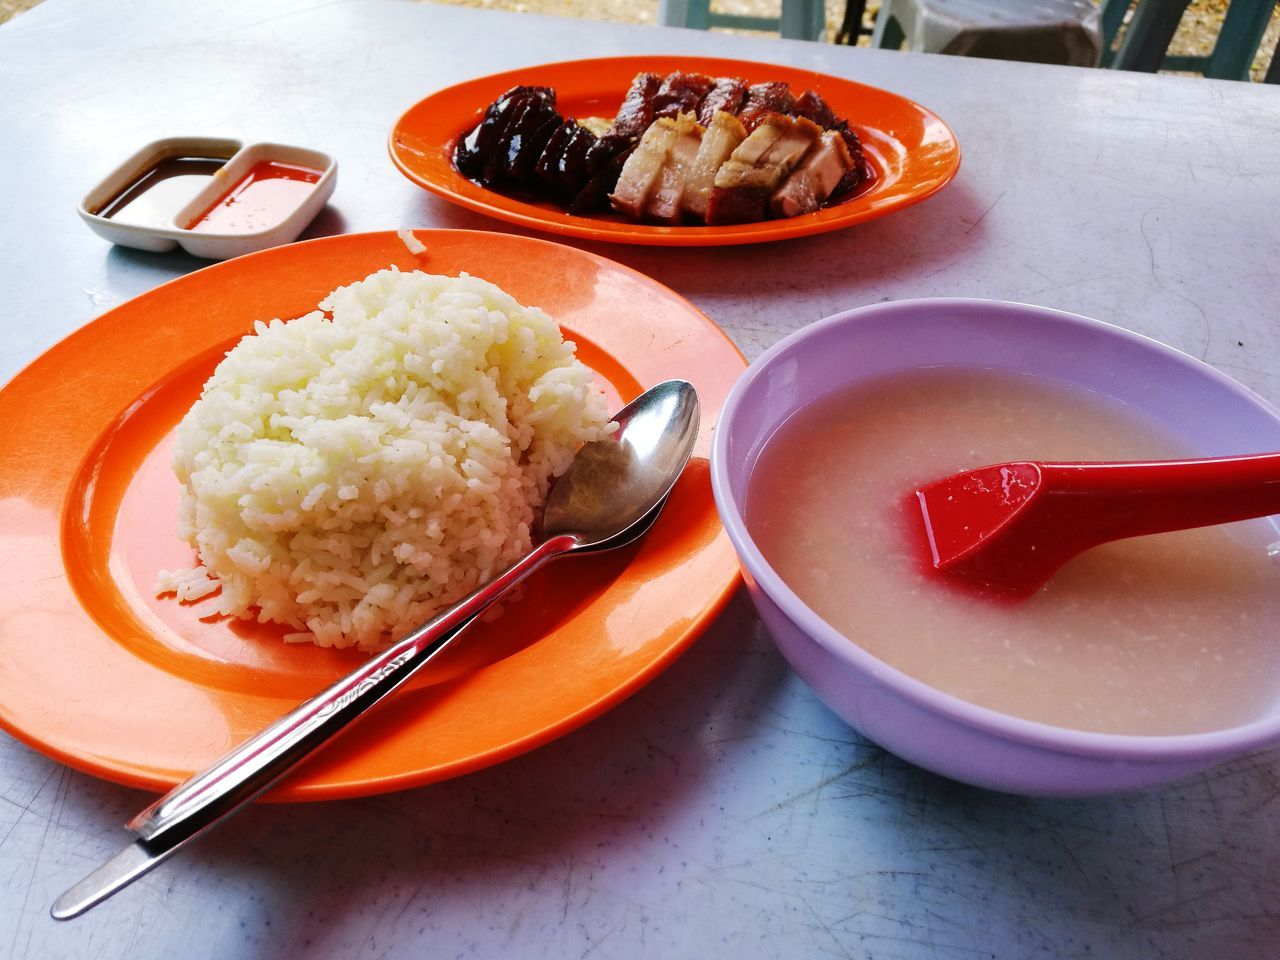 food and drink, food, table, bowl, serving size, plate, freshness, ready-to-eat, healthy eating, no people, indoors, meal, rice, chopsticks, close-up, day